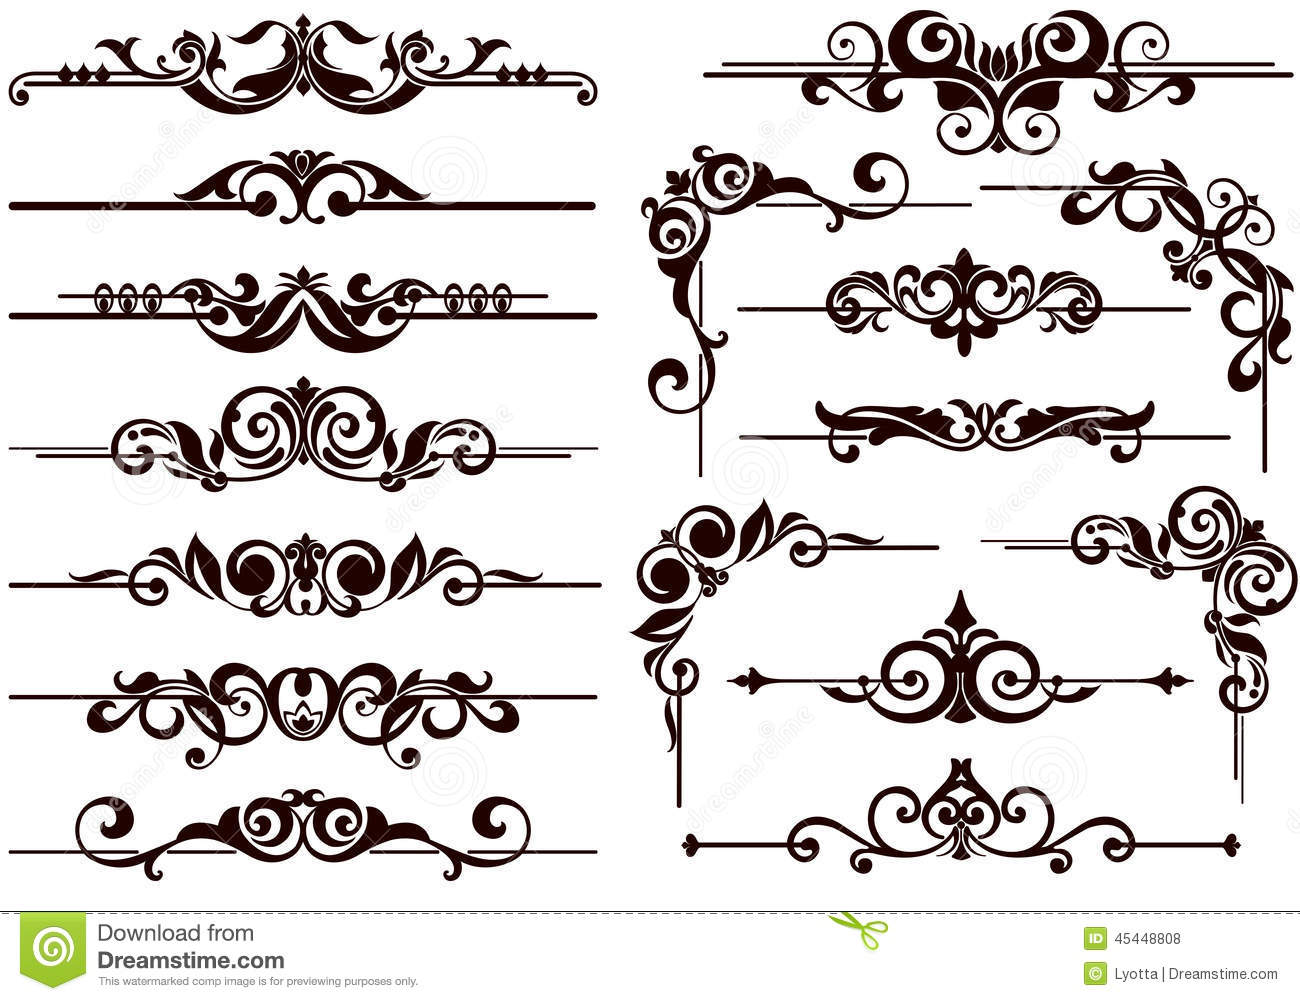 Vintage style ornaments - Vector Ornaments Frames Corners Borders Royalty Free Stock Photos